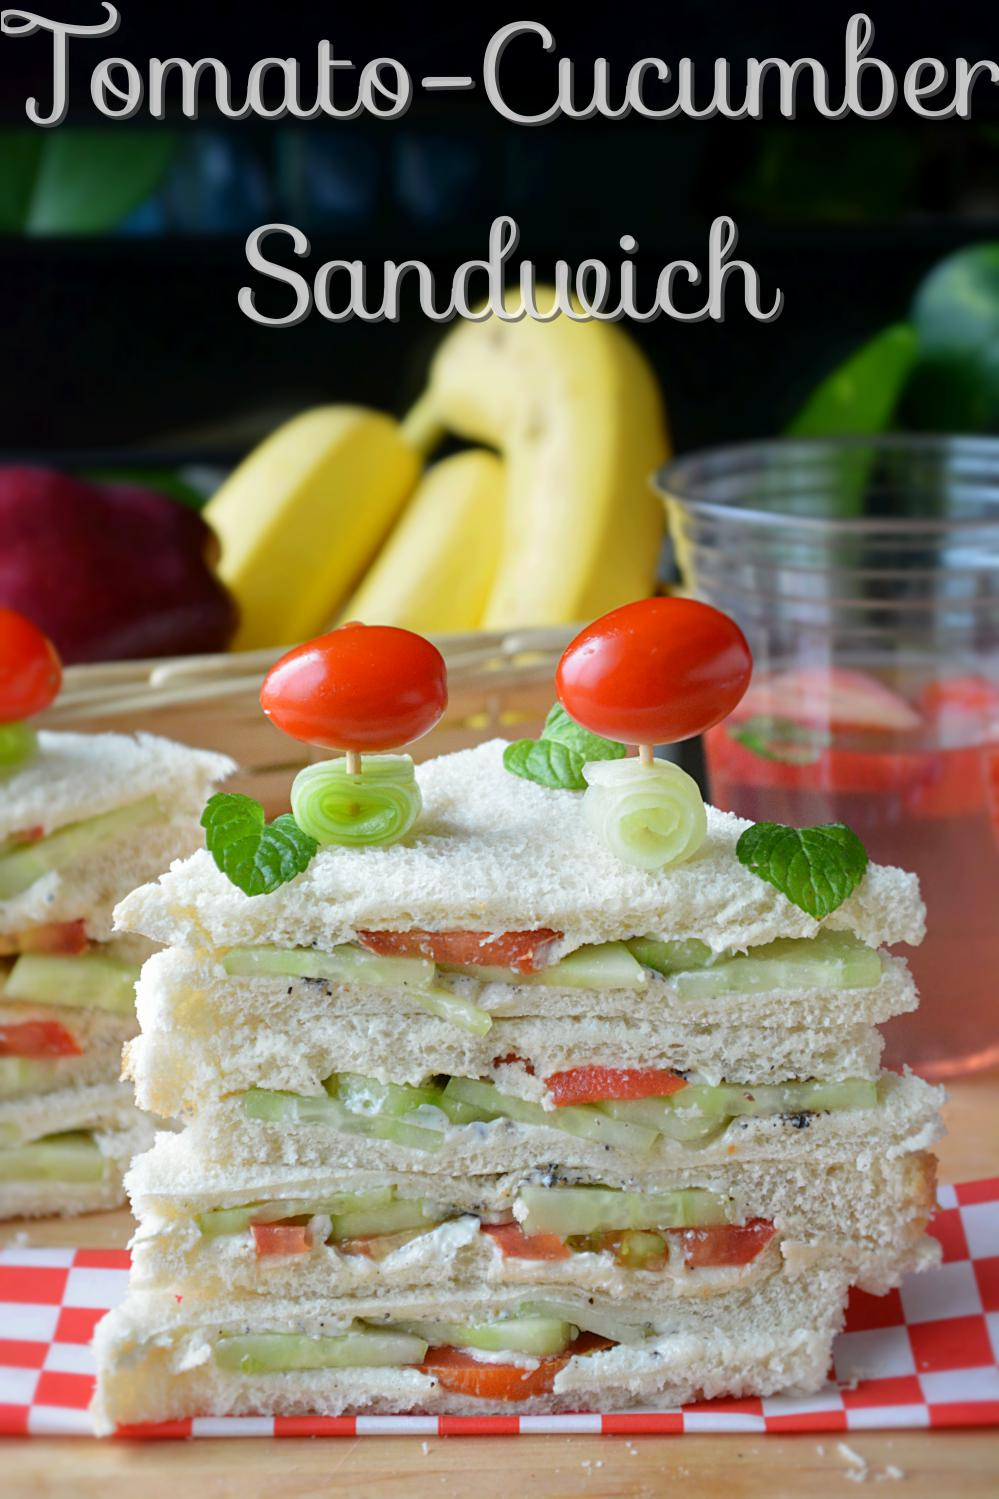 veg_sandwich_food_1